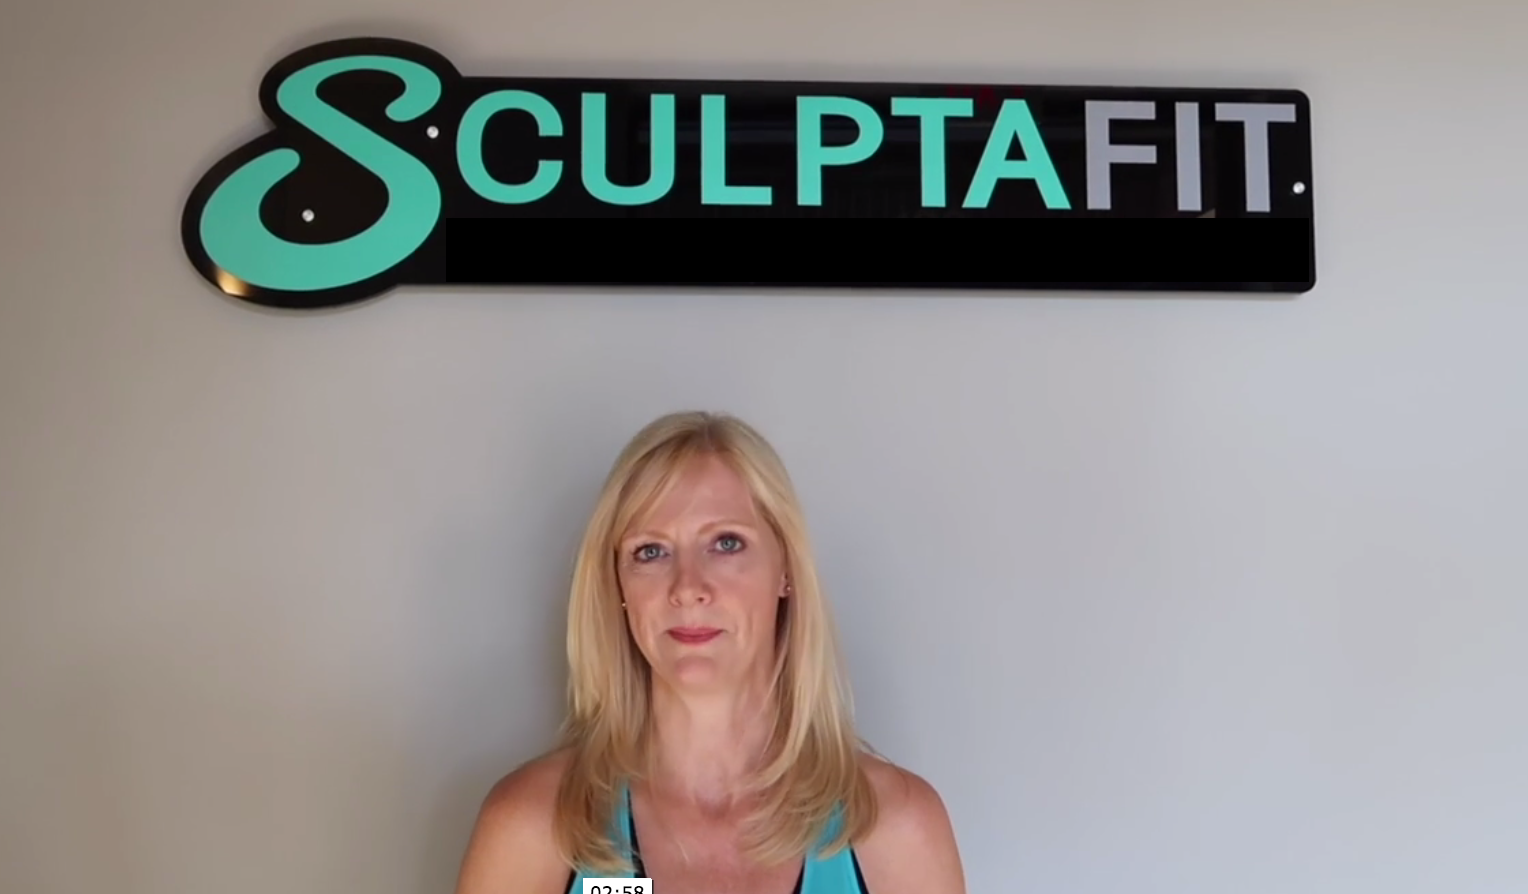 Home Gym Review Laura M on SCULPTAFIT Home Gym Set Up from Studio Video